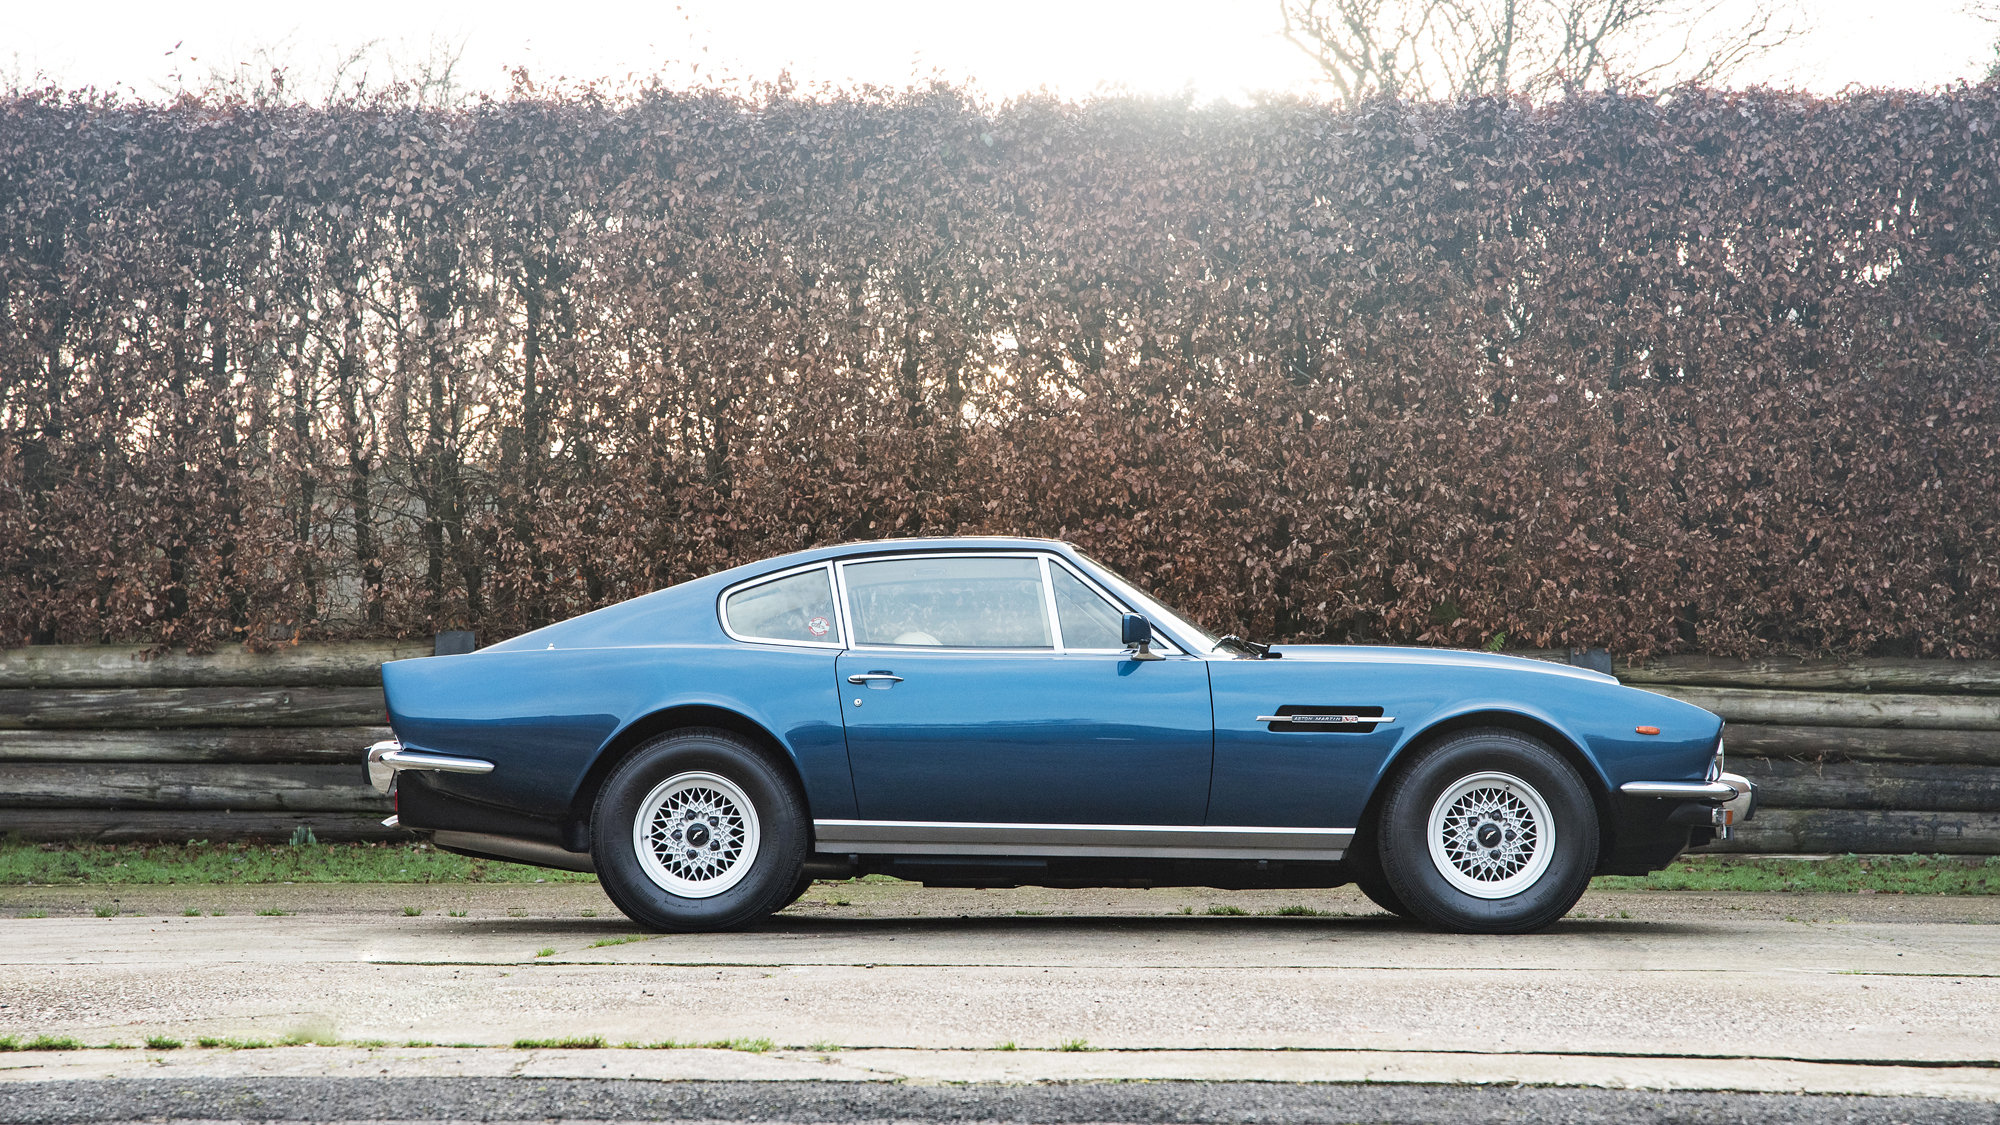 1984 Aston Martin V8 Coupe Series 4 - 10,500 Miles  For Sale (picture 2 of 6)